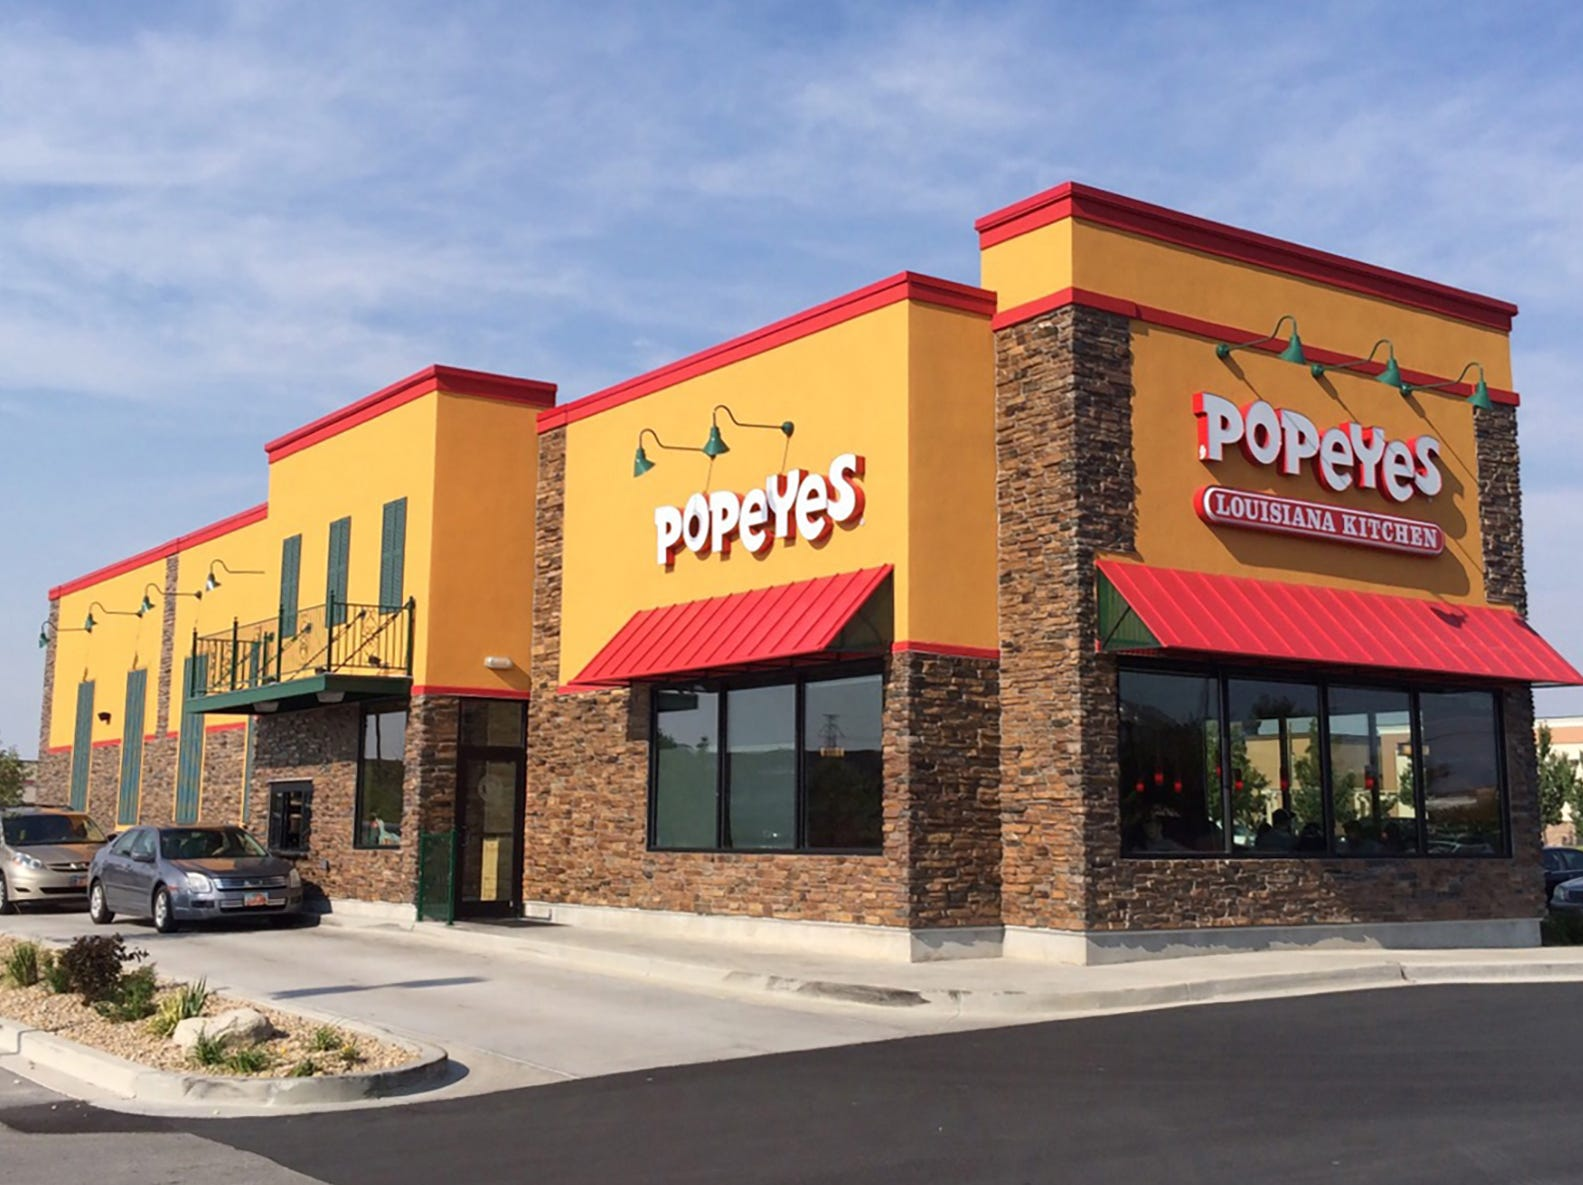 Popeyes Louisiana Kitchen franchisees are planning drive-thru locations for the fast-food fried chicken restaurant in 2019 in Golden Gate and Bonita Springs.